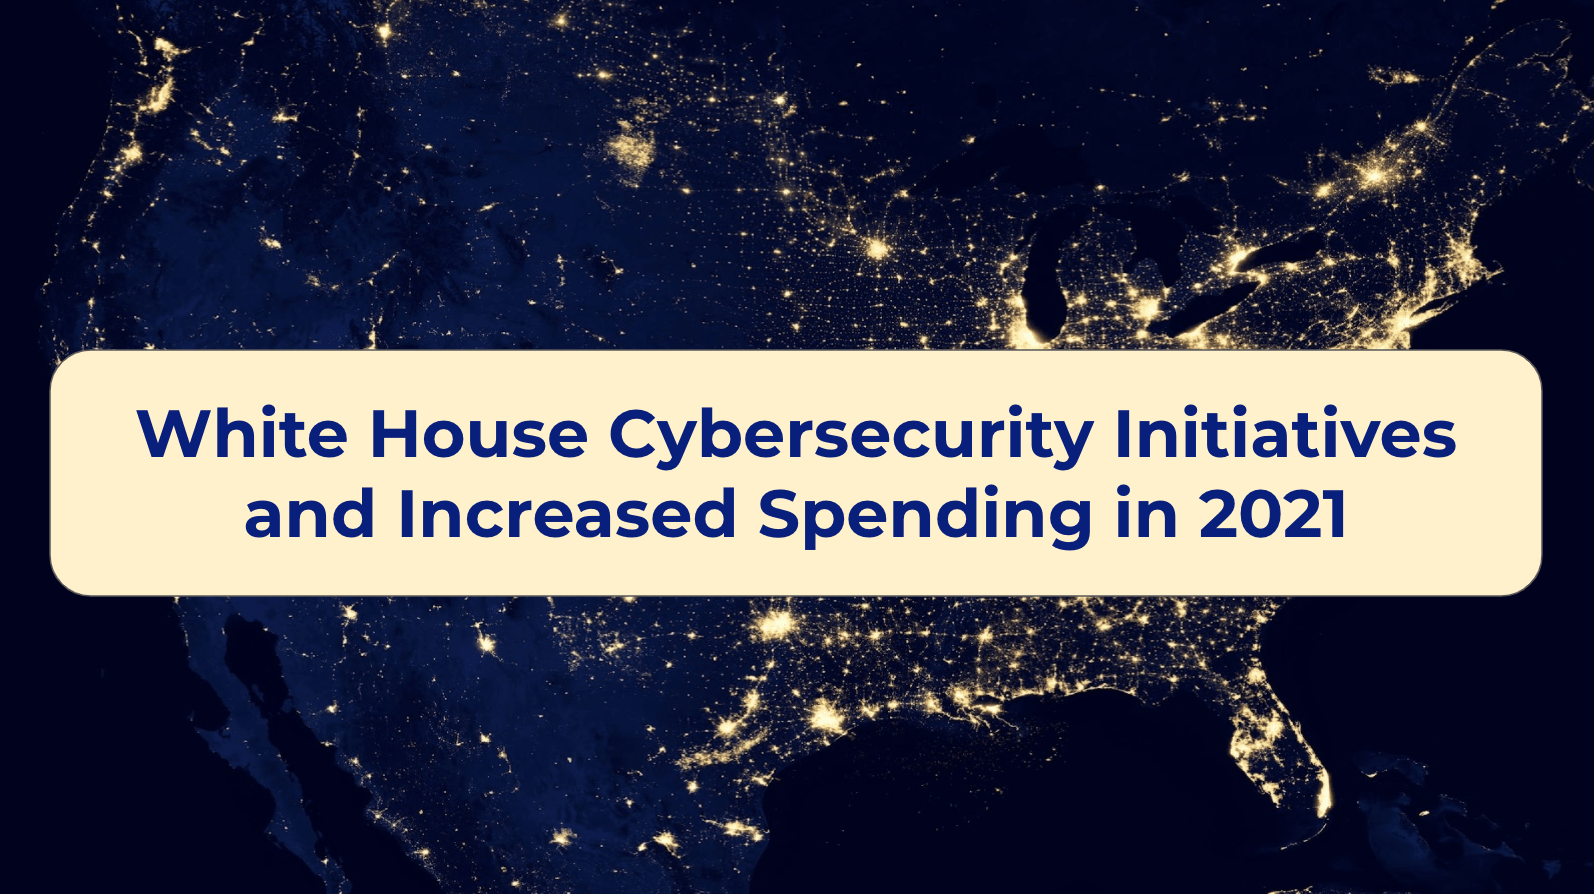 White House Cybersecurity Initiatives and Increased Spending in 2021